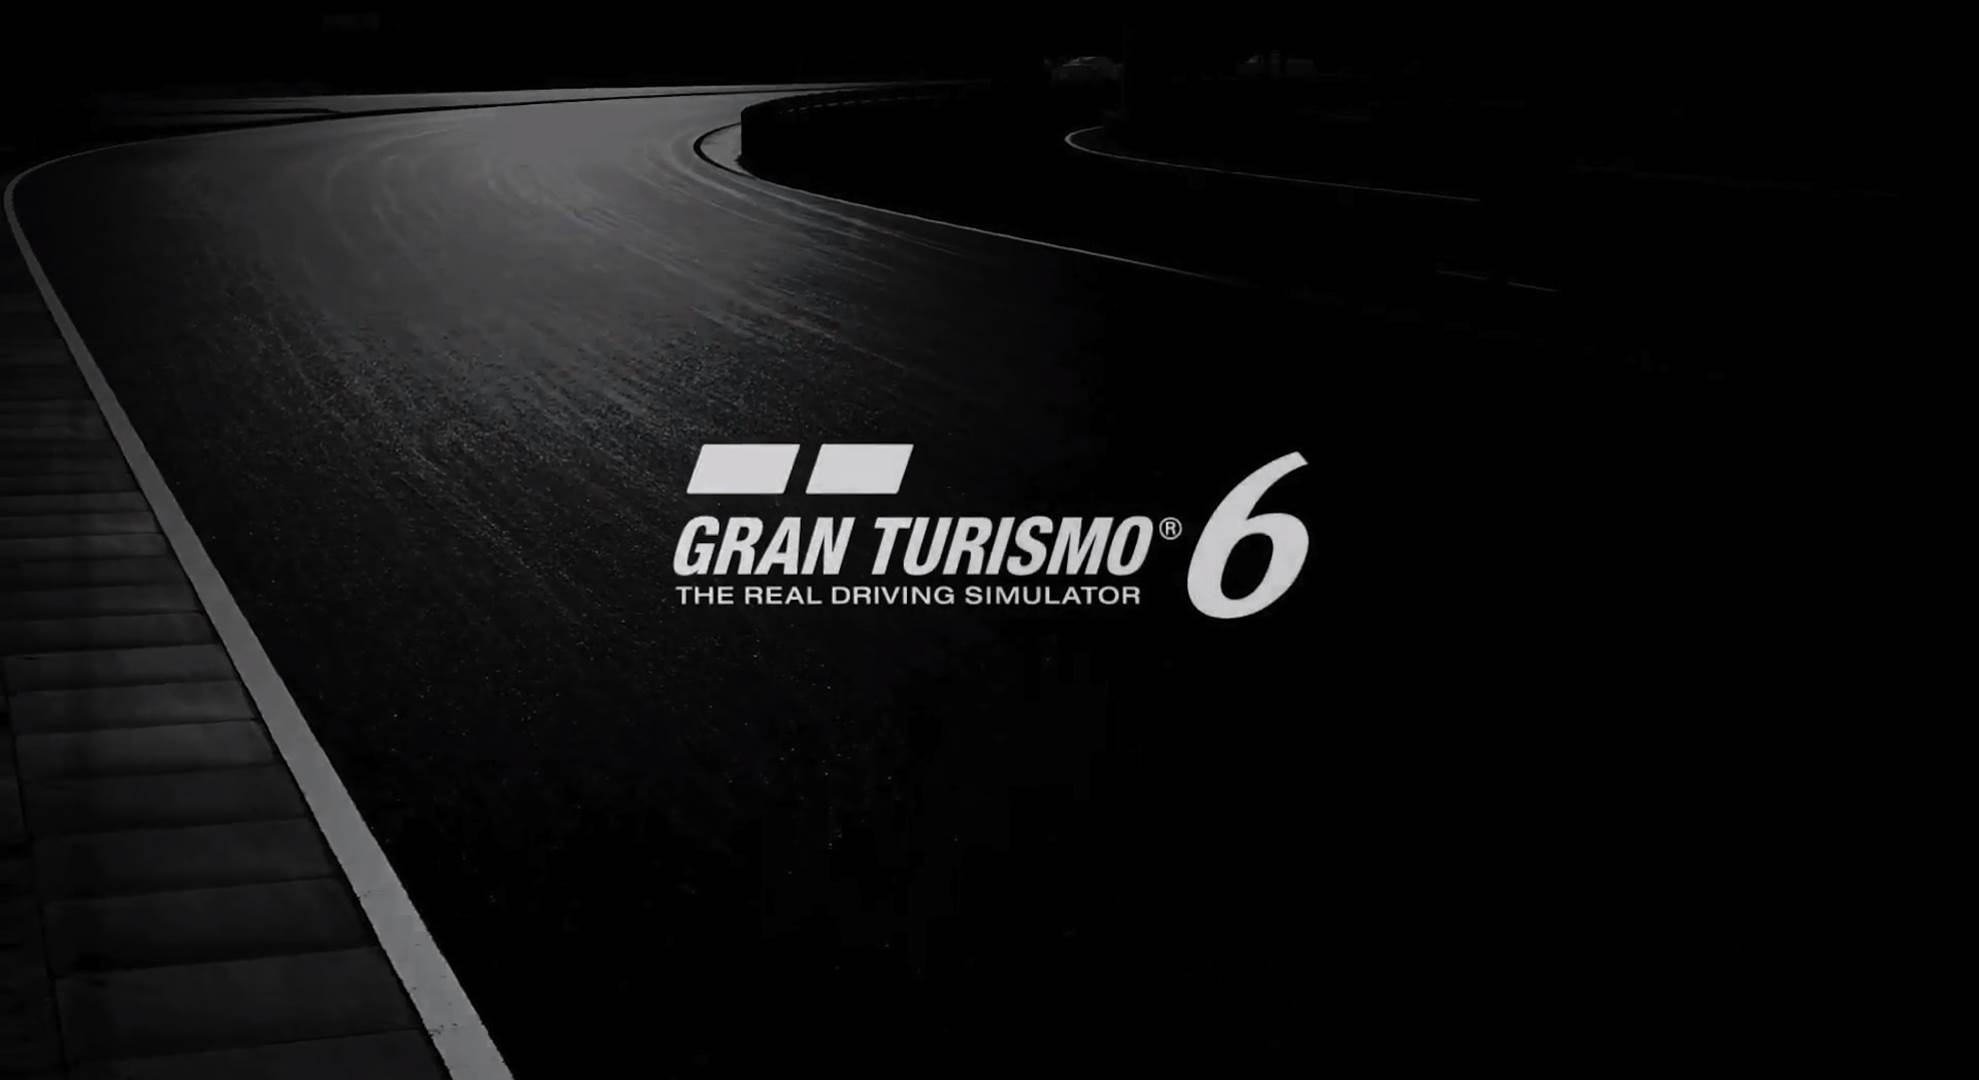 gran turismo 6 wallpapers